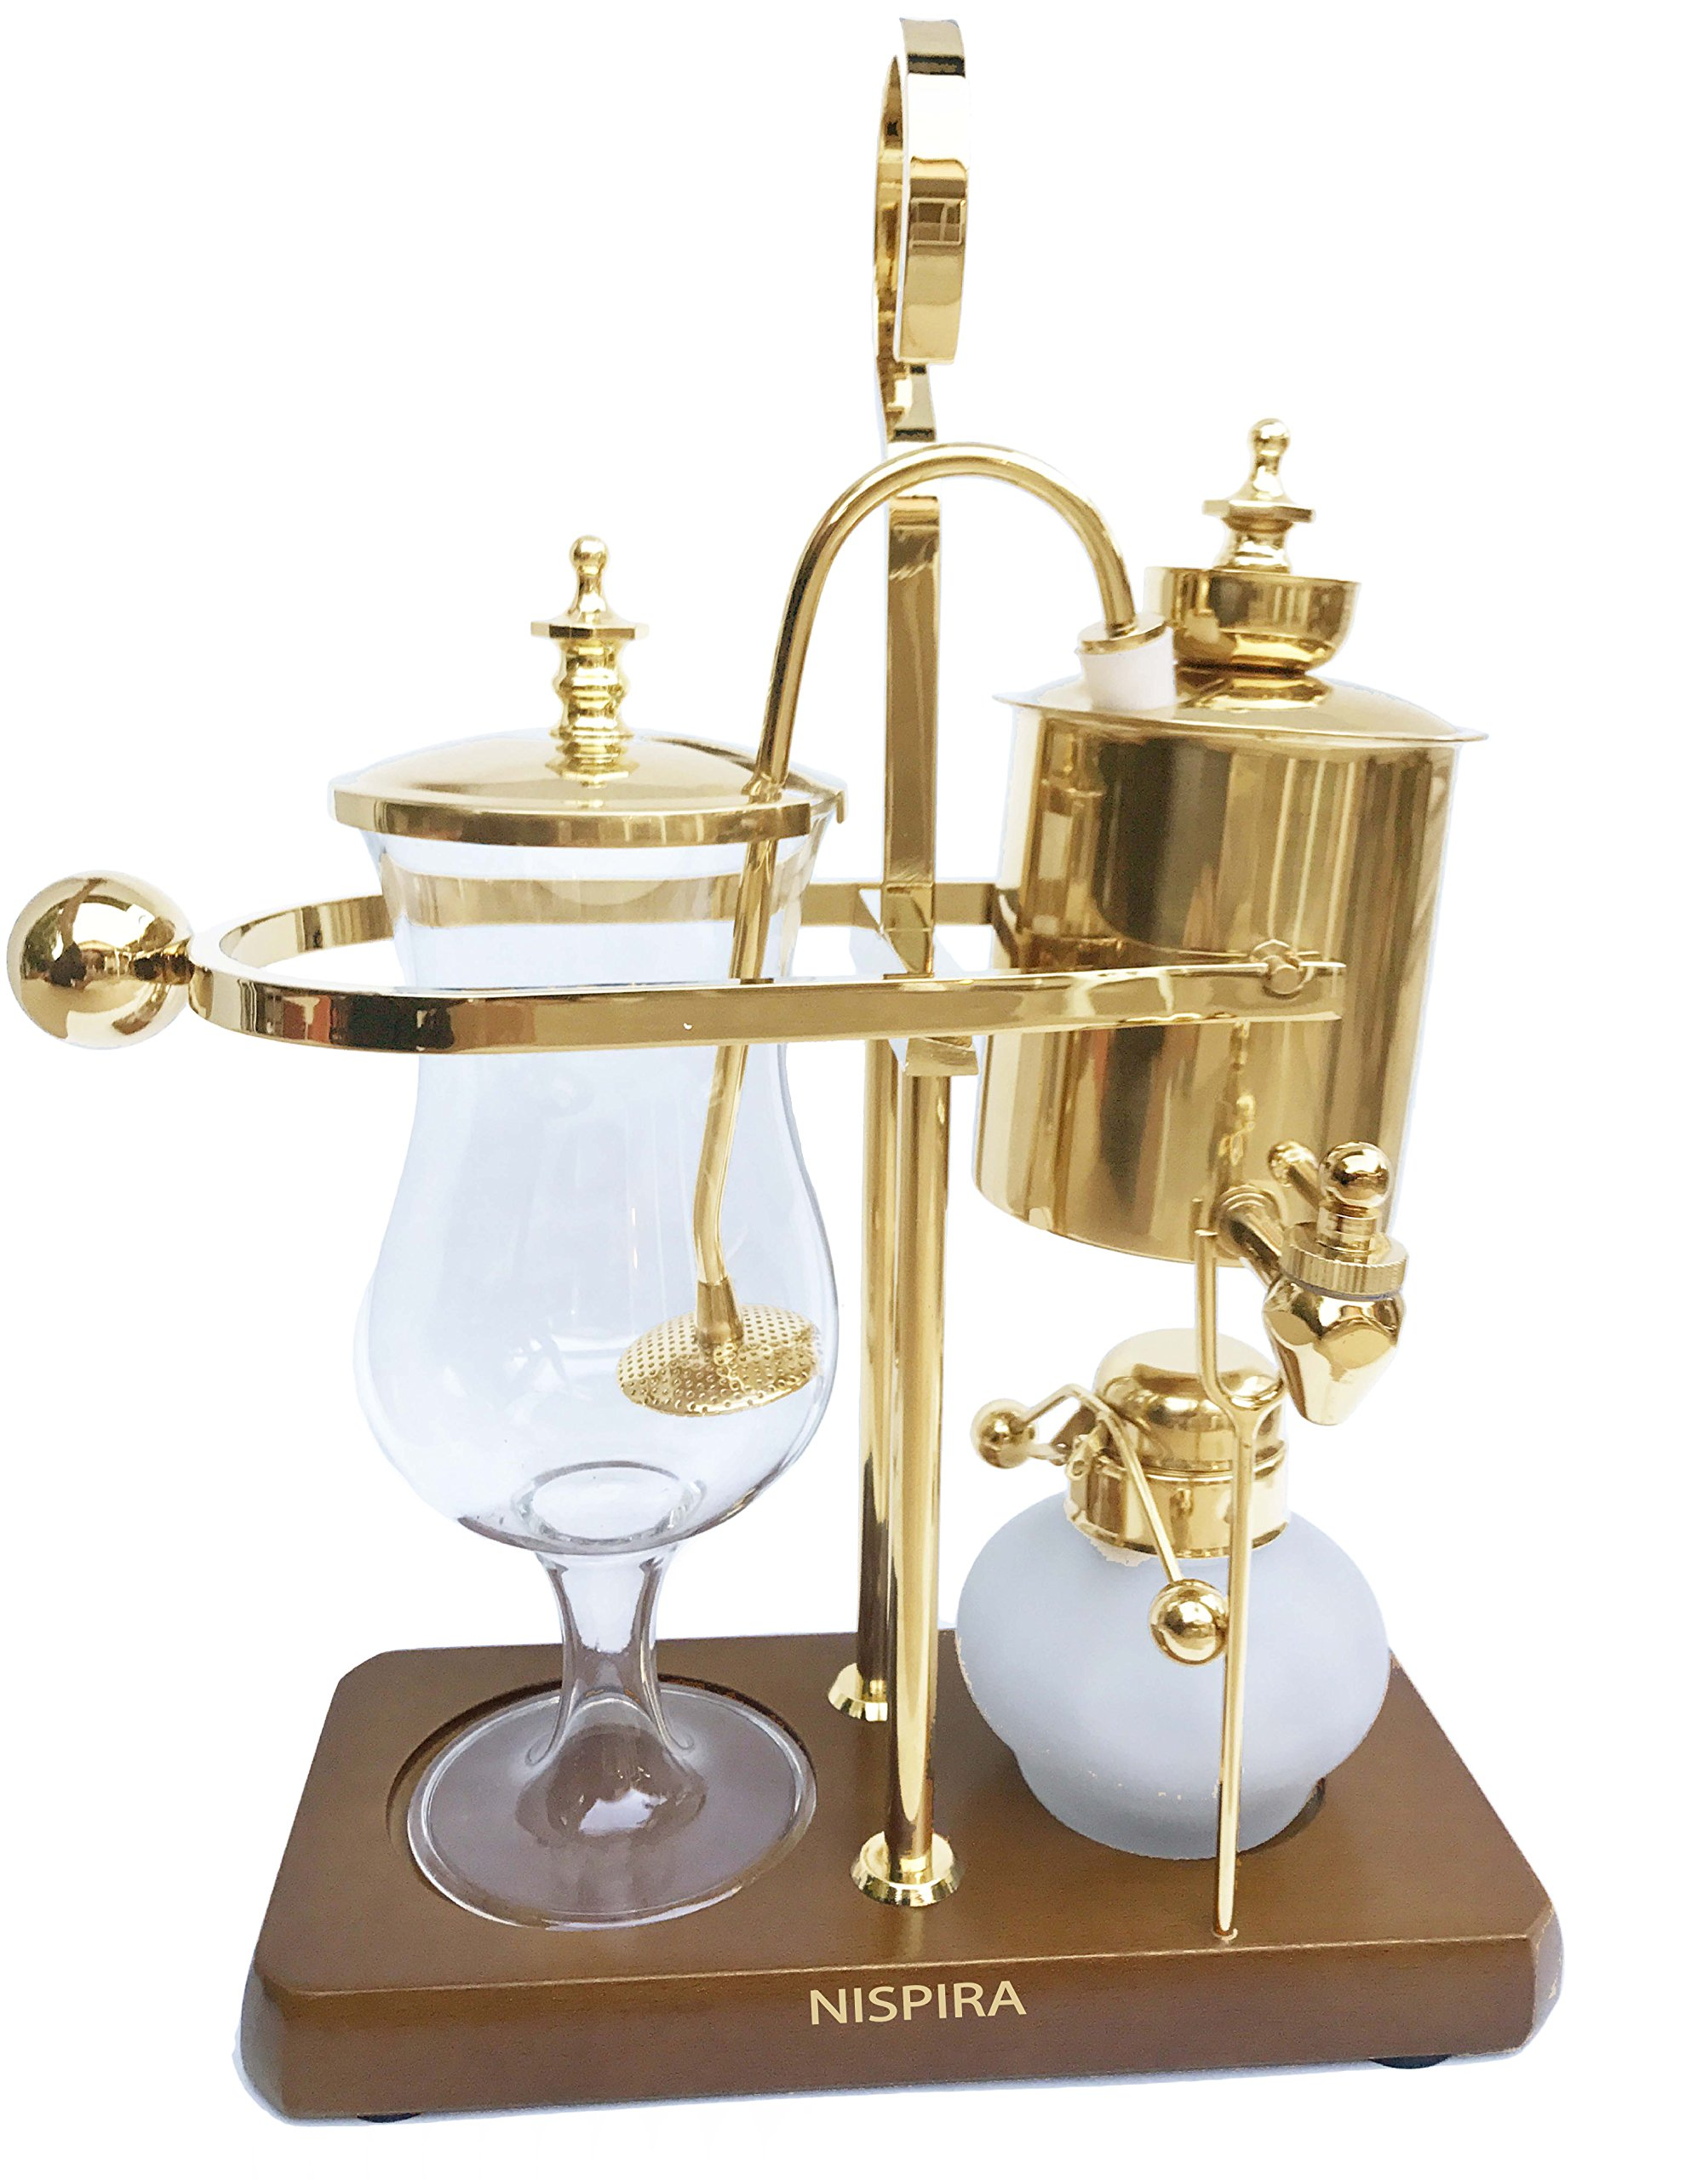 NISPIRA Belgian Belgium Luxury Royal Family Balance Syphon Siphon Coffee Maker Gold Color, 1 set